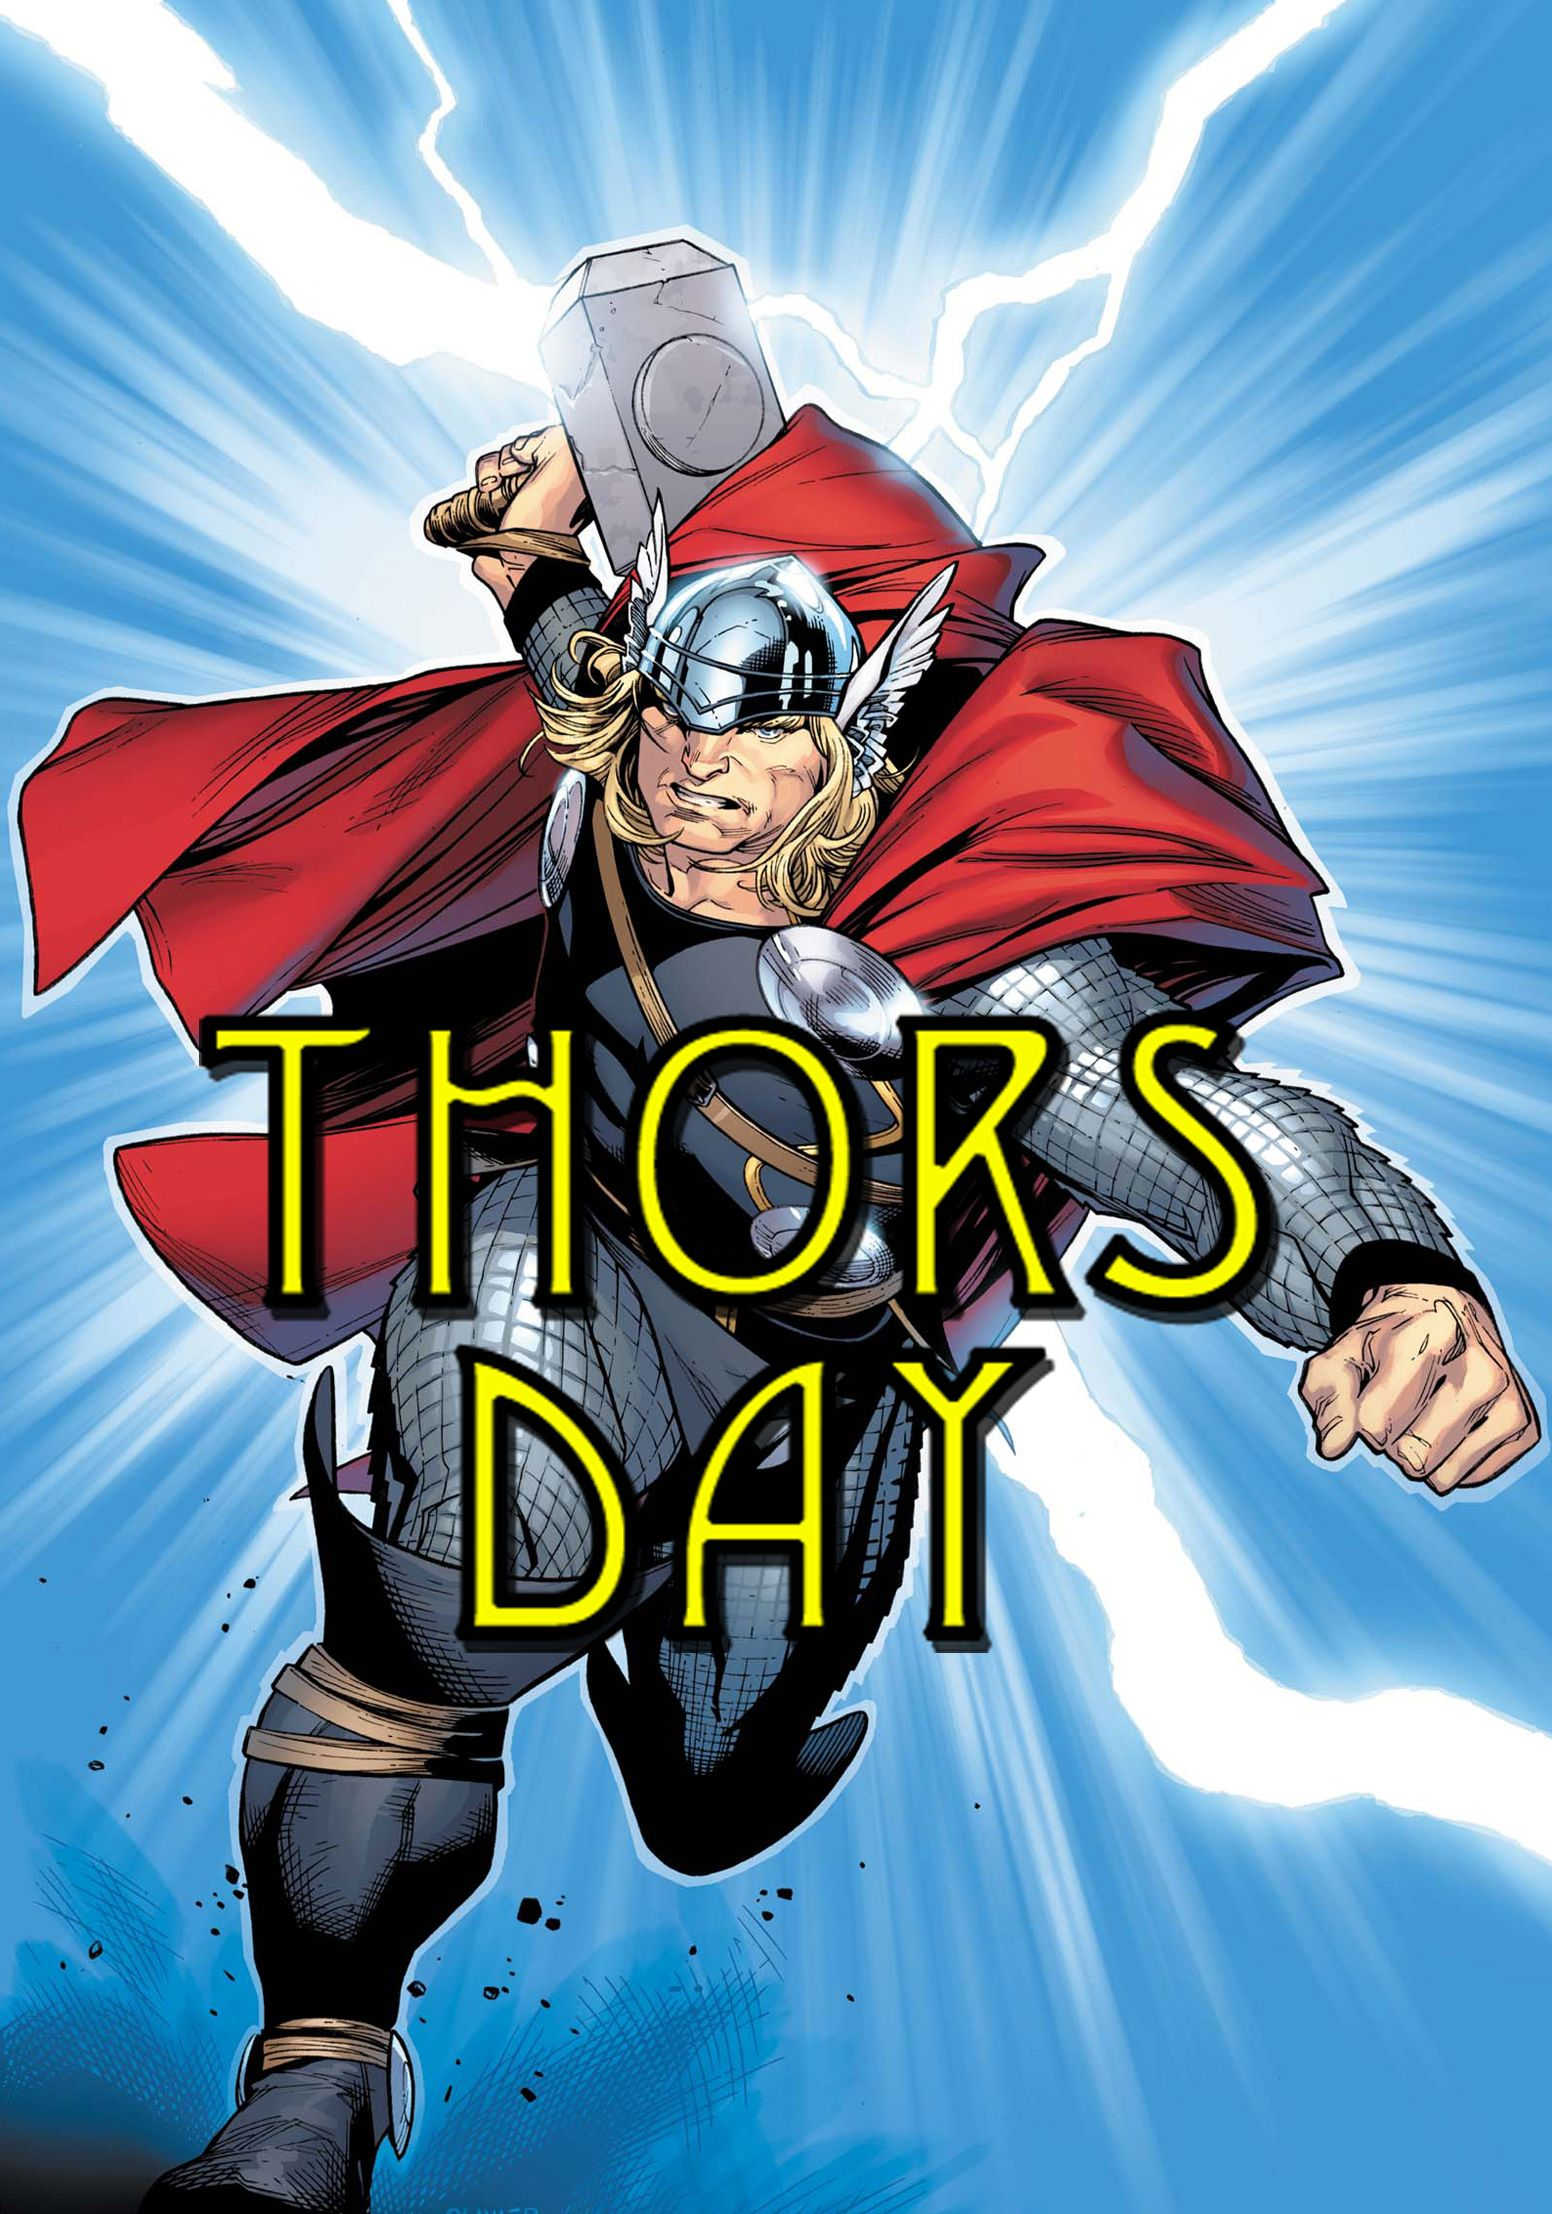 +thorsday   THORSDAY!May 6th is the day THOR slams into theaters, and [...]